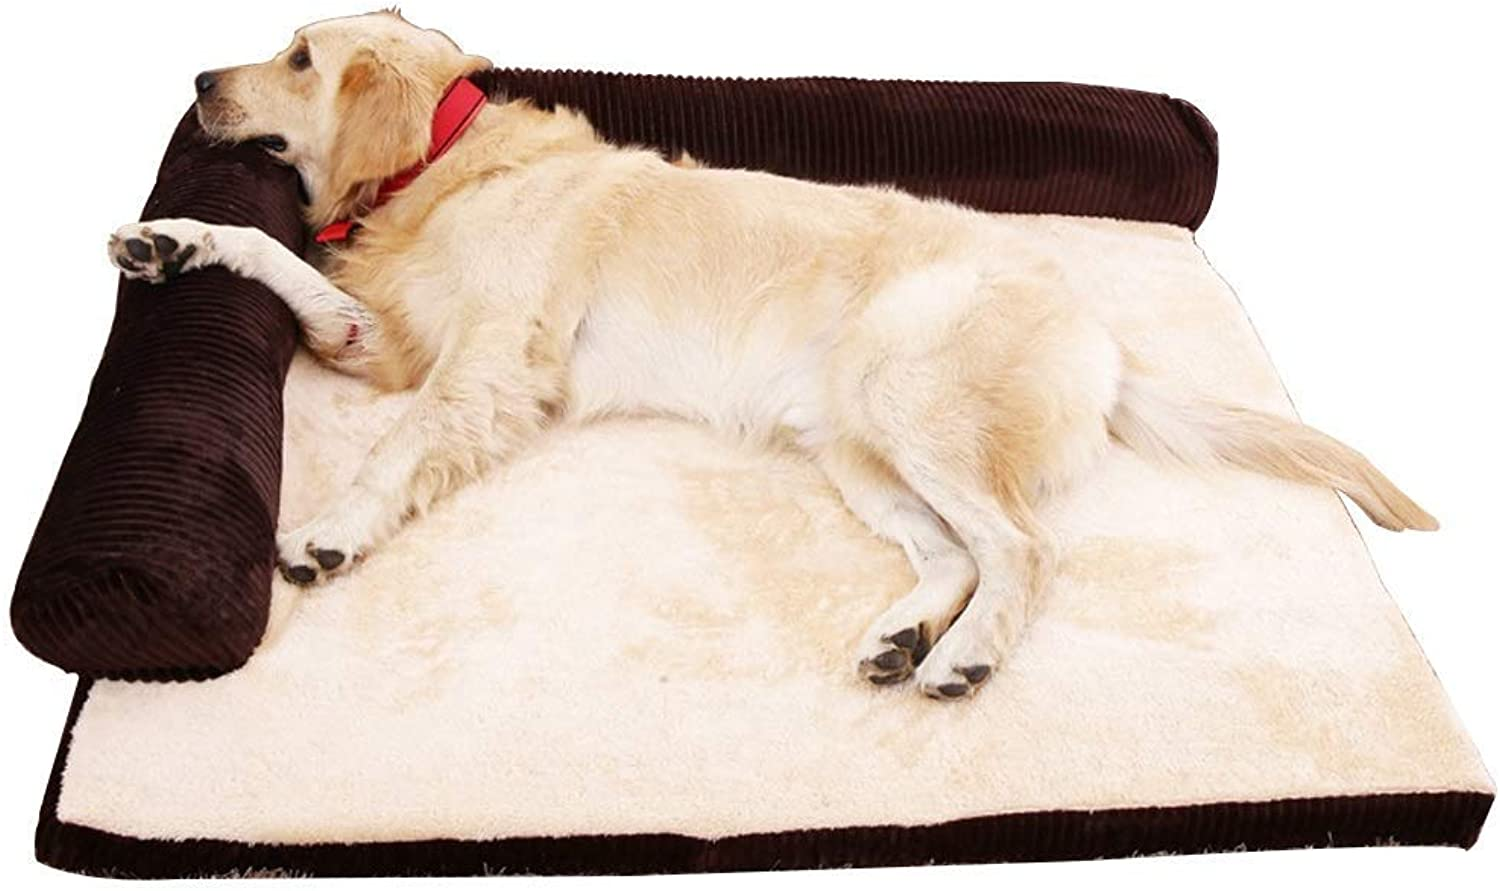 KYCD pet bed Large Square Pet Sofa Corduroy Pet Bed, Cat and Dog, All Removable and Washable, Suitable for Small and Medium Pet Small Pets (color   BROWN, Size   S)